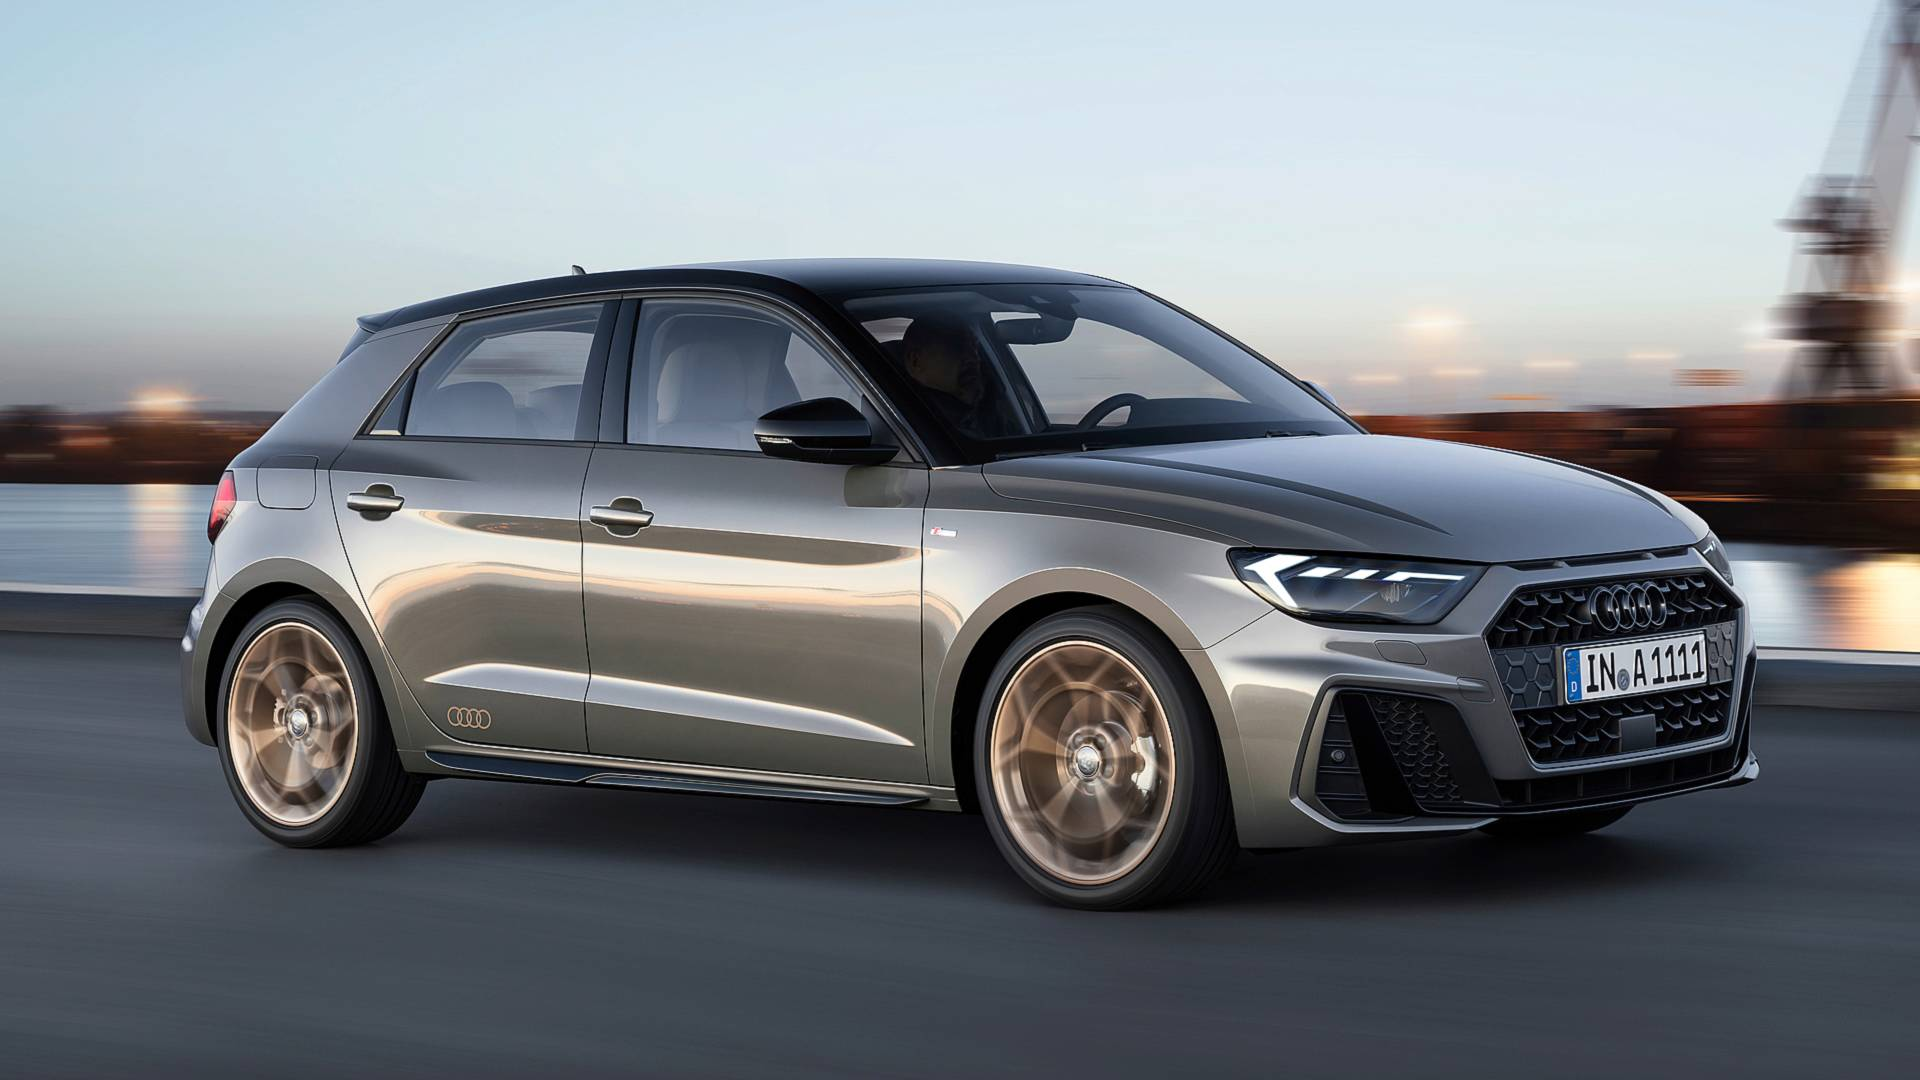 2020 Audi Q1 Release Date, Concept, Price, And Specs >> New Audi S1 Allegedly Coming Next Year With 250 Horsepower